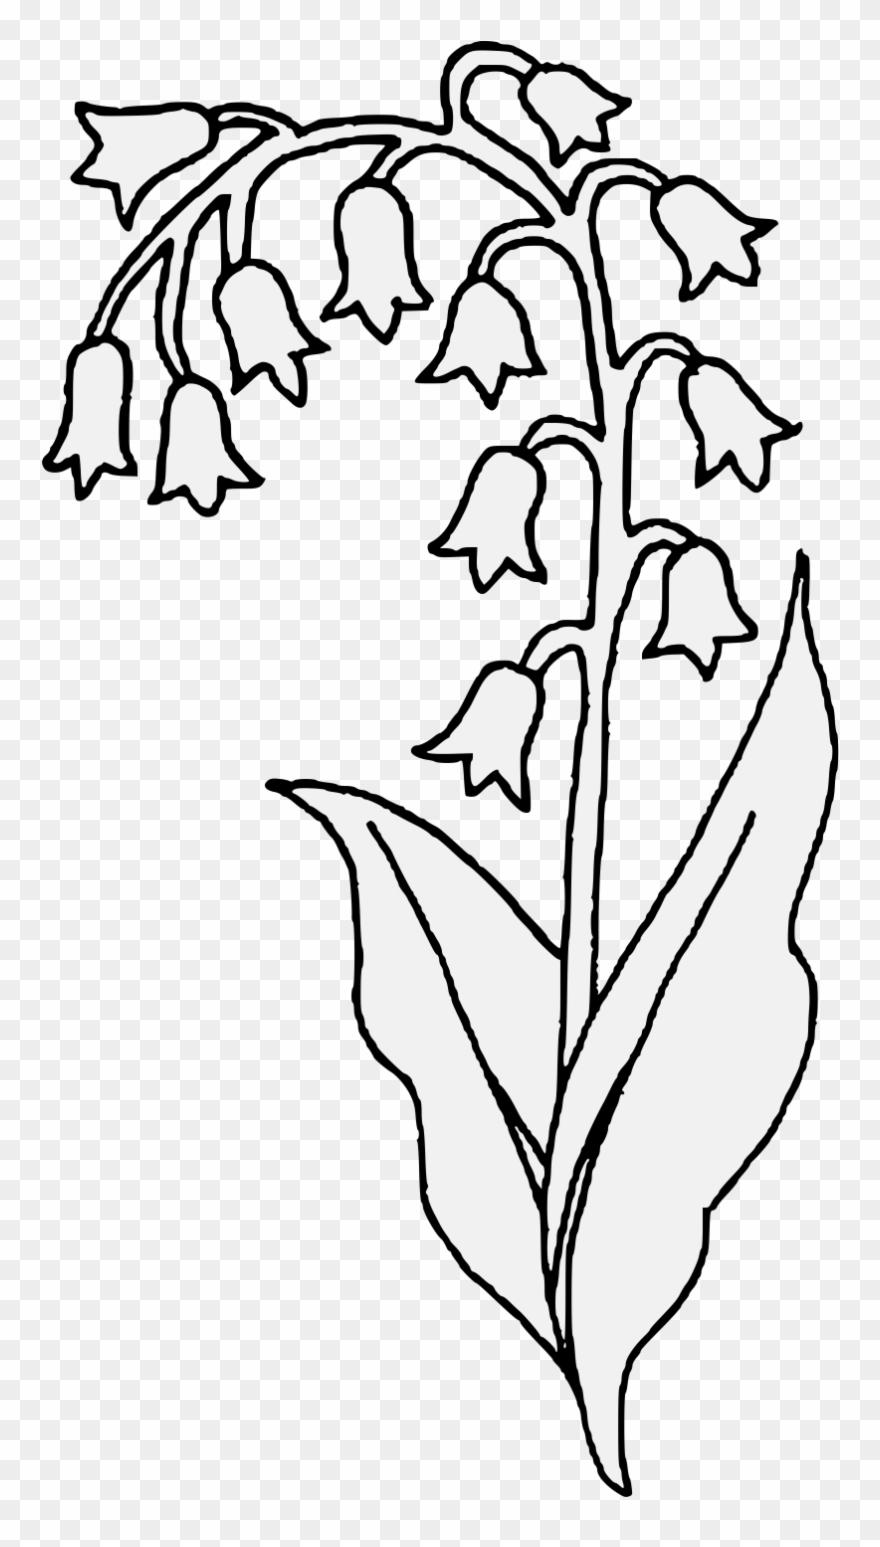 Lily Of The Valley Clipart Transparent - Lilies Of The Valley Sketch - Png Download